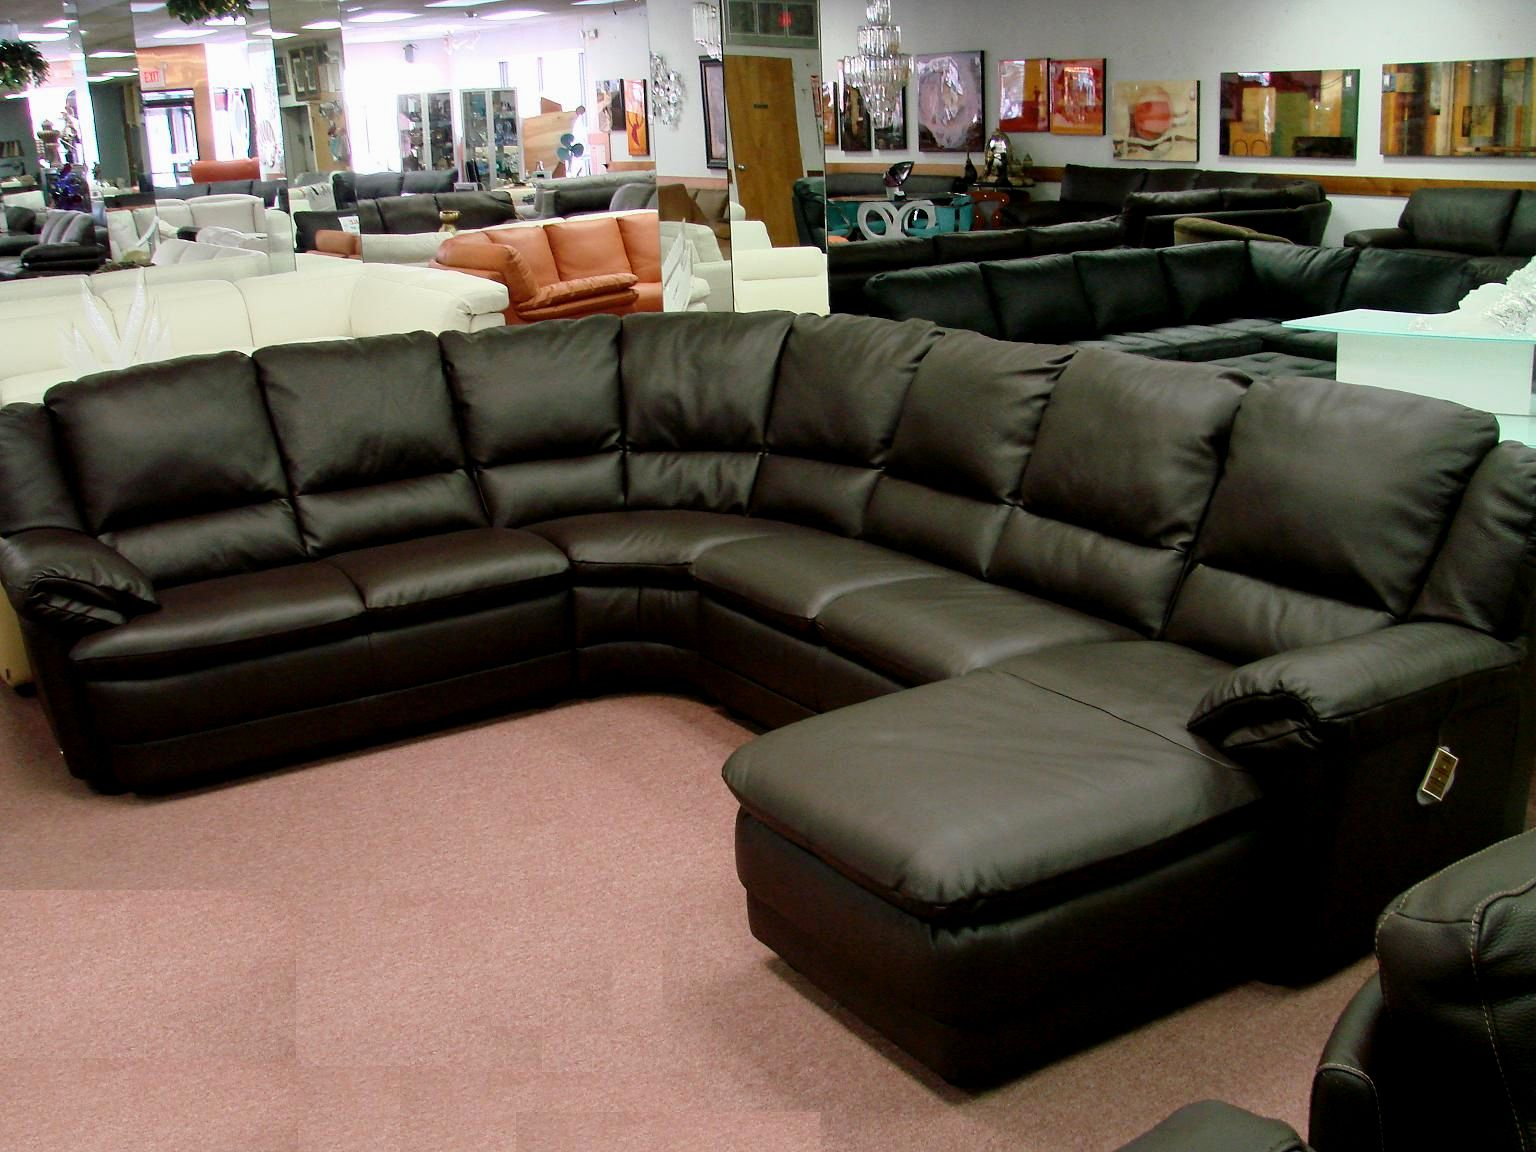 cool sectional sofas on sale design-Elegant Sectional sofas On Sale Ideas